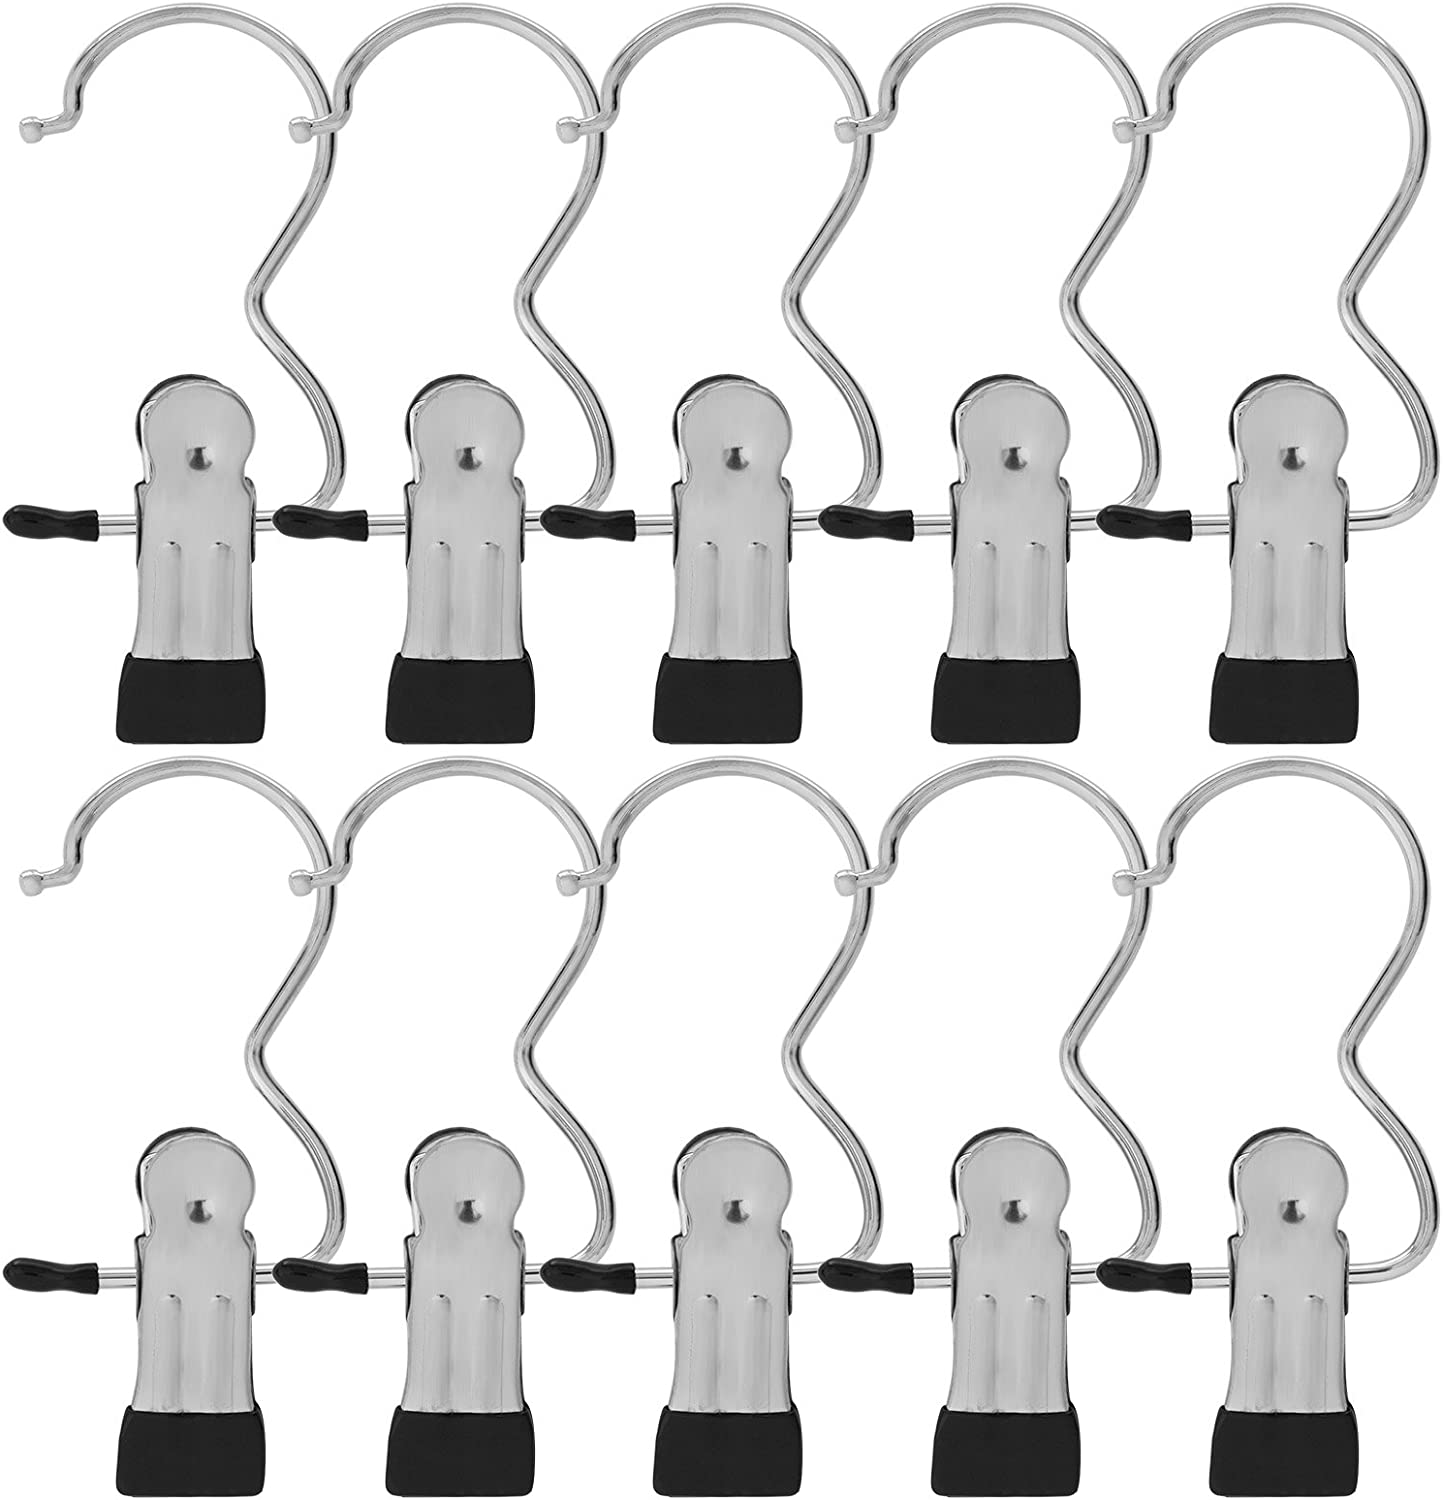 BEWISHOME 24 PCS Laundry Hook Boot Hanging Hold Clips Portable Hanging Hooks Home Travel Hangers Clothing Clothes Pins, Chrome FYC03S